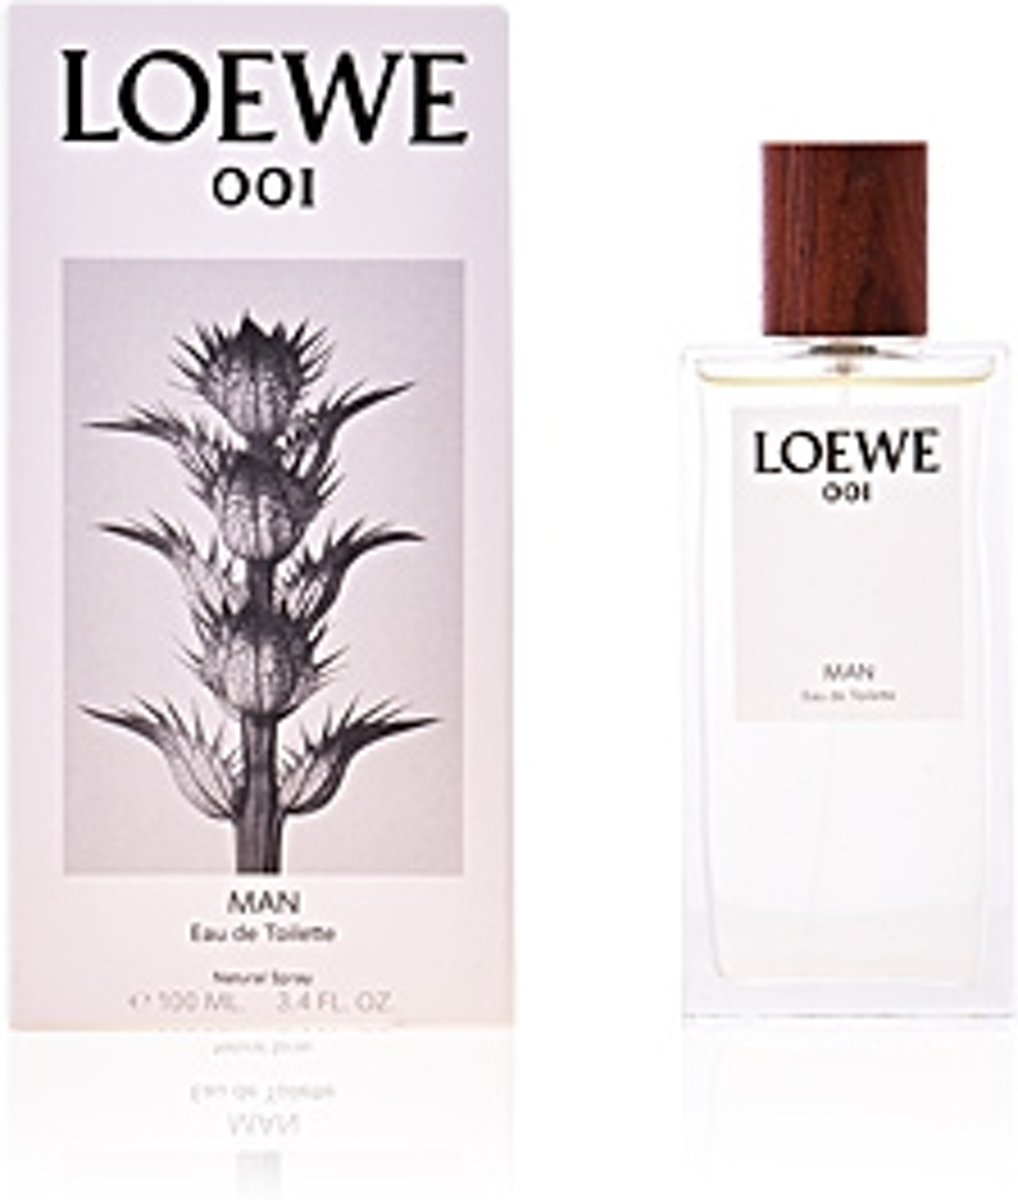 Loewe LOEWE 001 MAN edt spray 100 ml